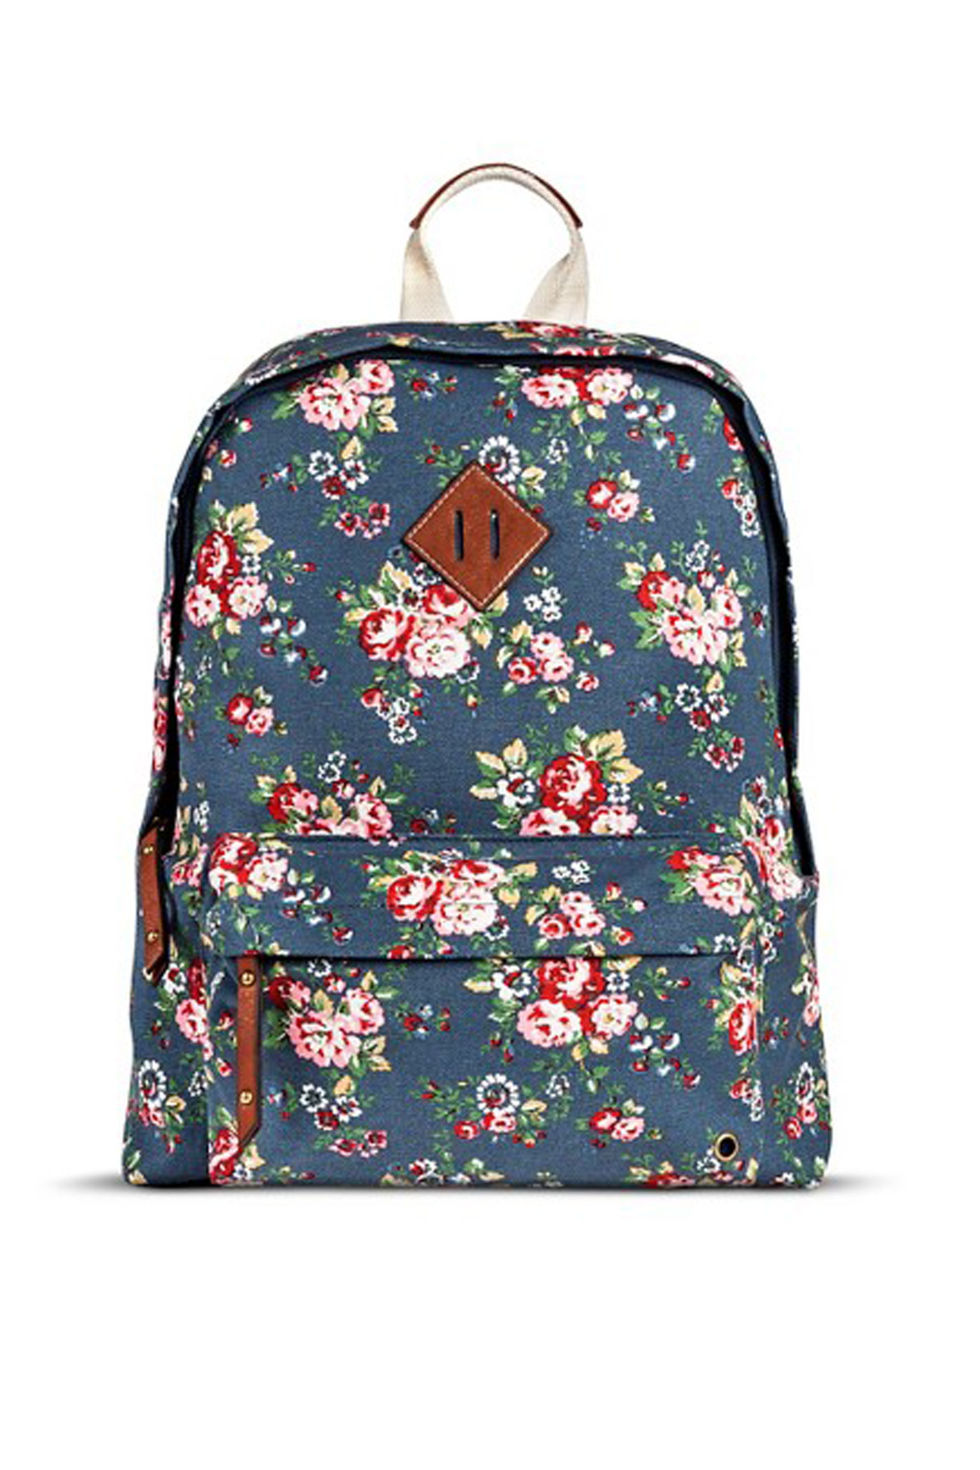 Backpacks For Girl lqdg22Bh